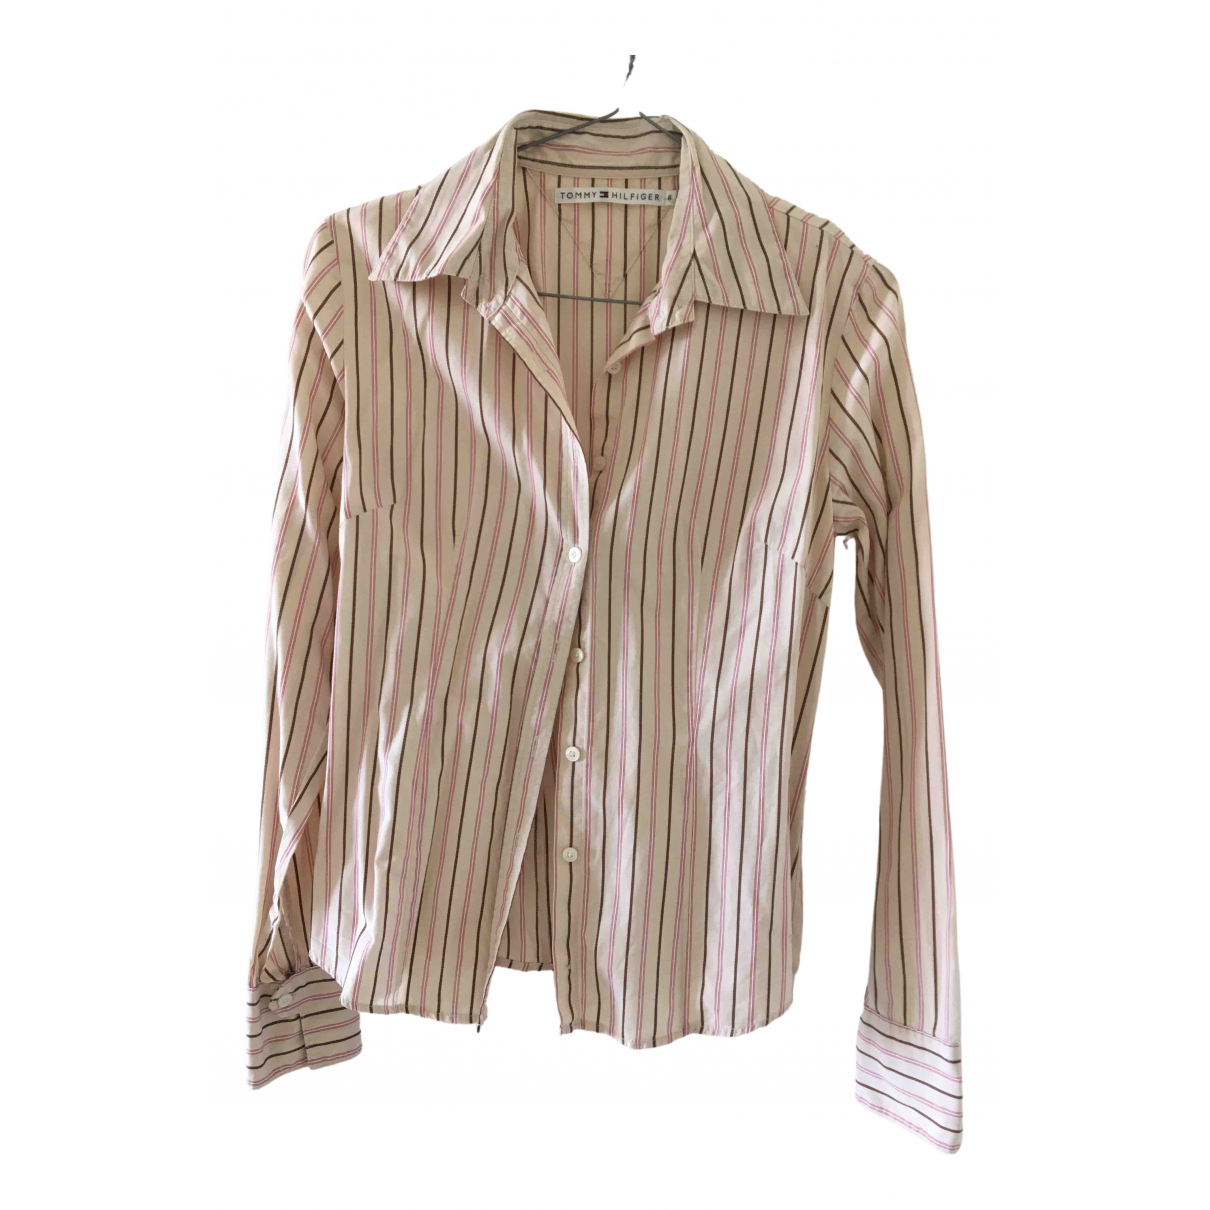 Tommy Hilfiger \N Pink Cotton  top for Women 6 UK